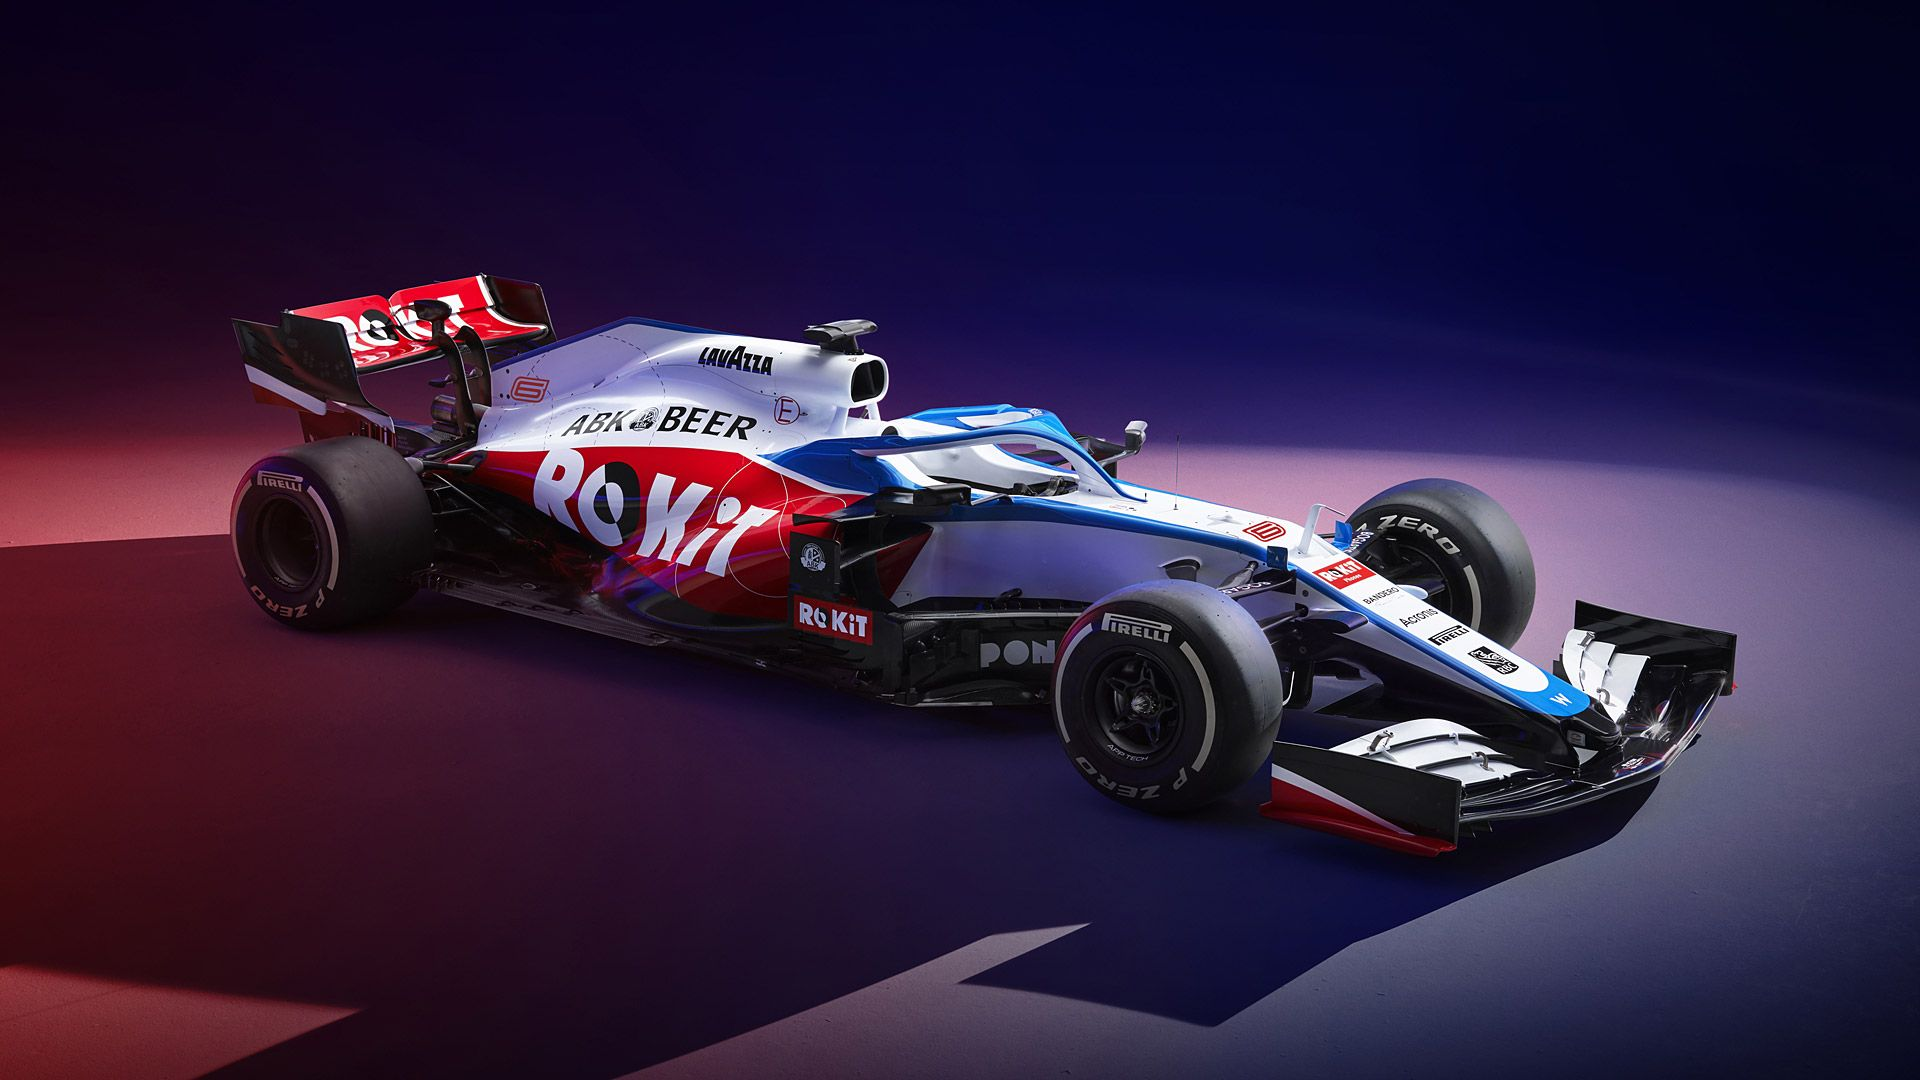 Williams Racing Zoom Background